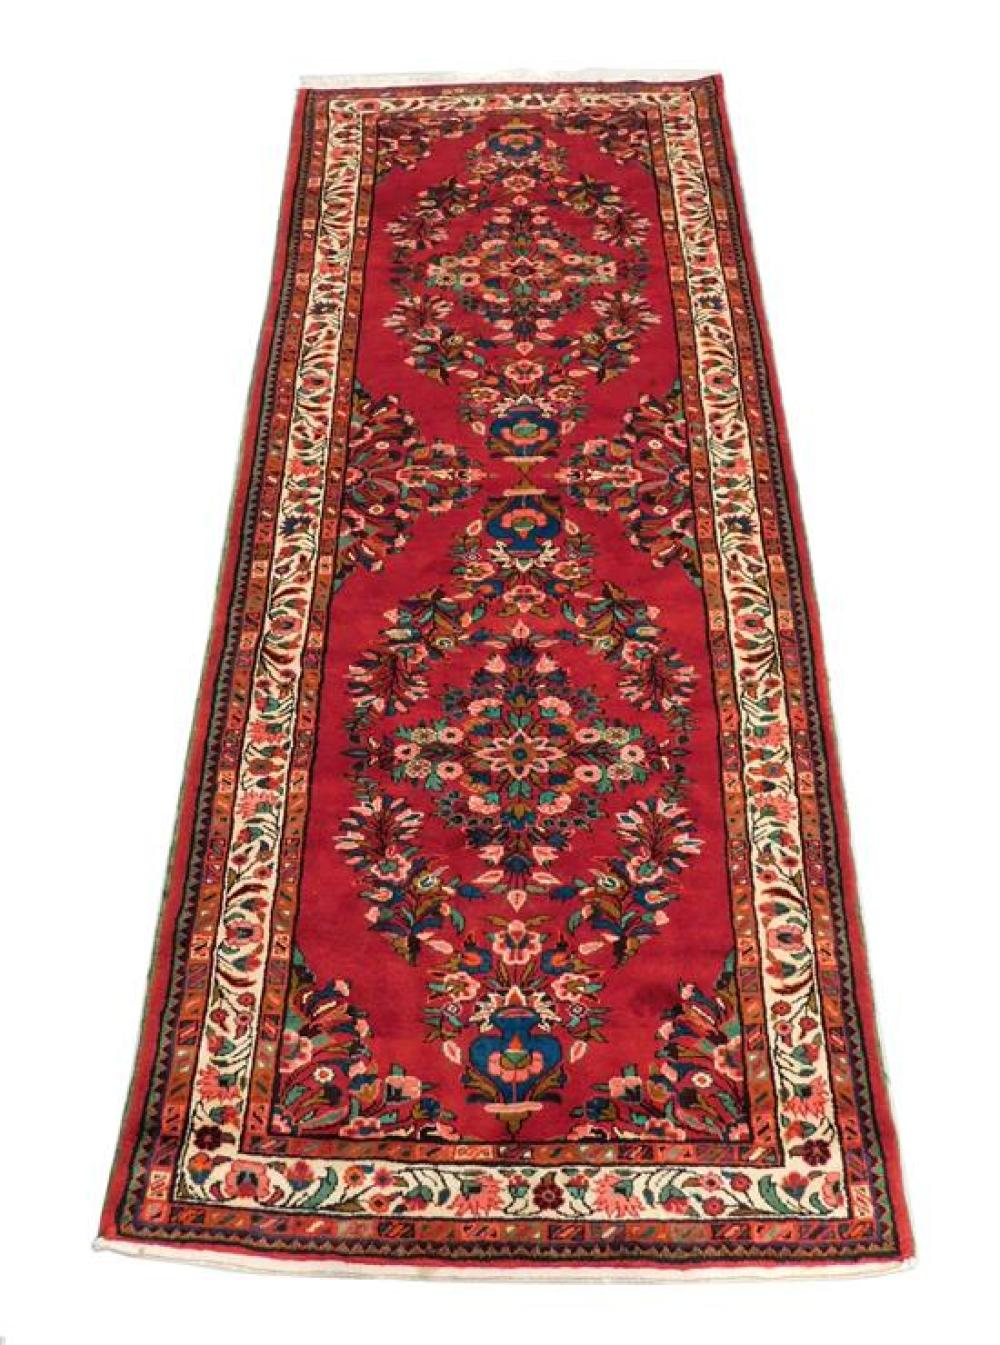 "RUG: Persian Hamadan, 10' 10"" x 4' 3"", 100% wool on cotton, double vase design at center with floral sprays on red ground, cream maj."